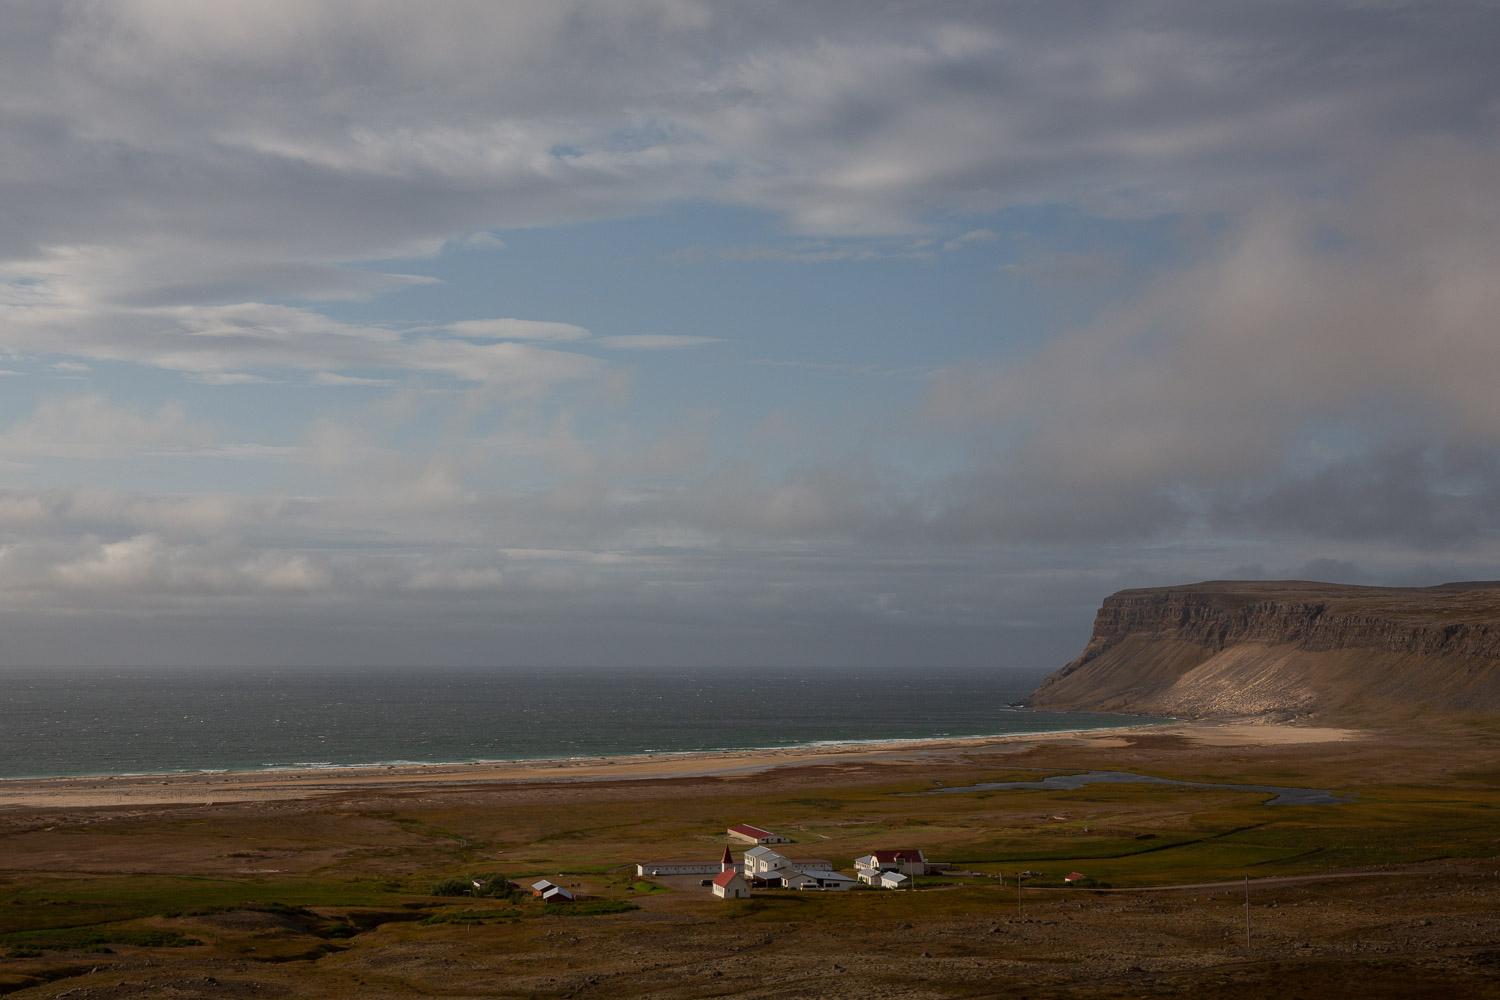 The village of Hvallátur in the west of Iceland